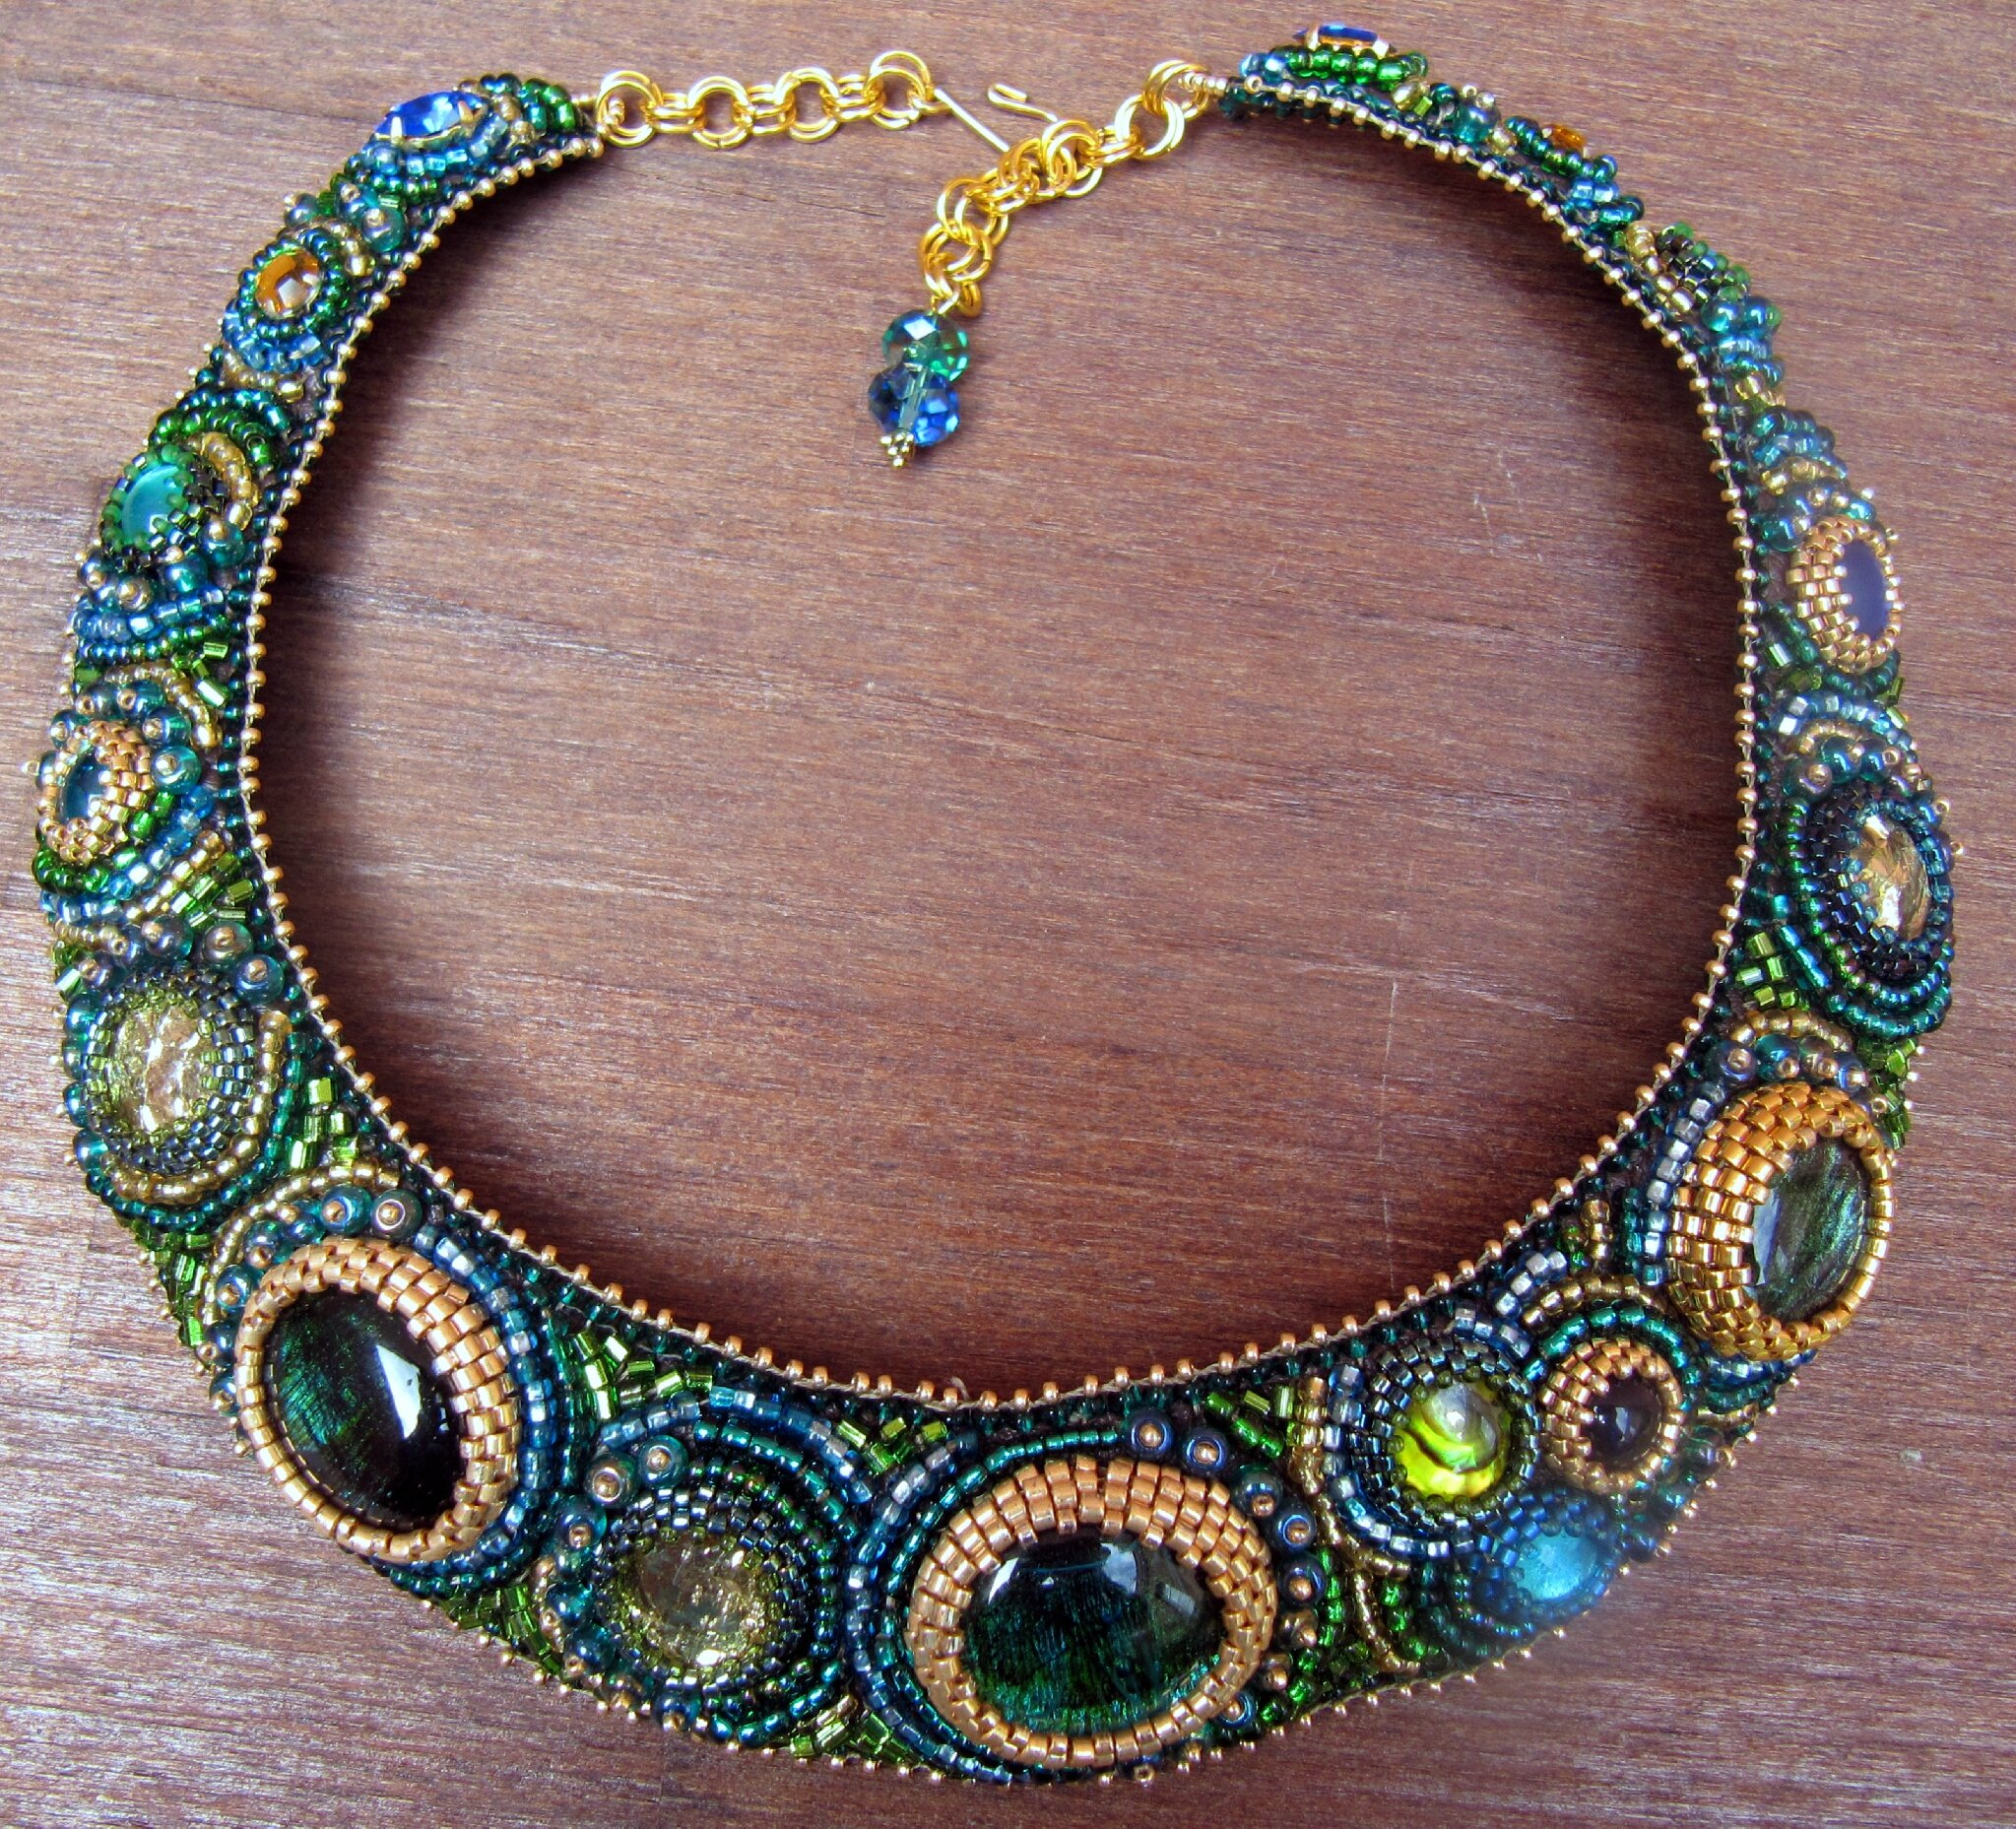 COLLIER BRODE COLLECTION NUIT IRISEE